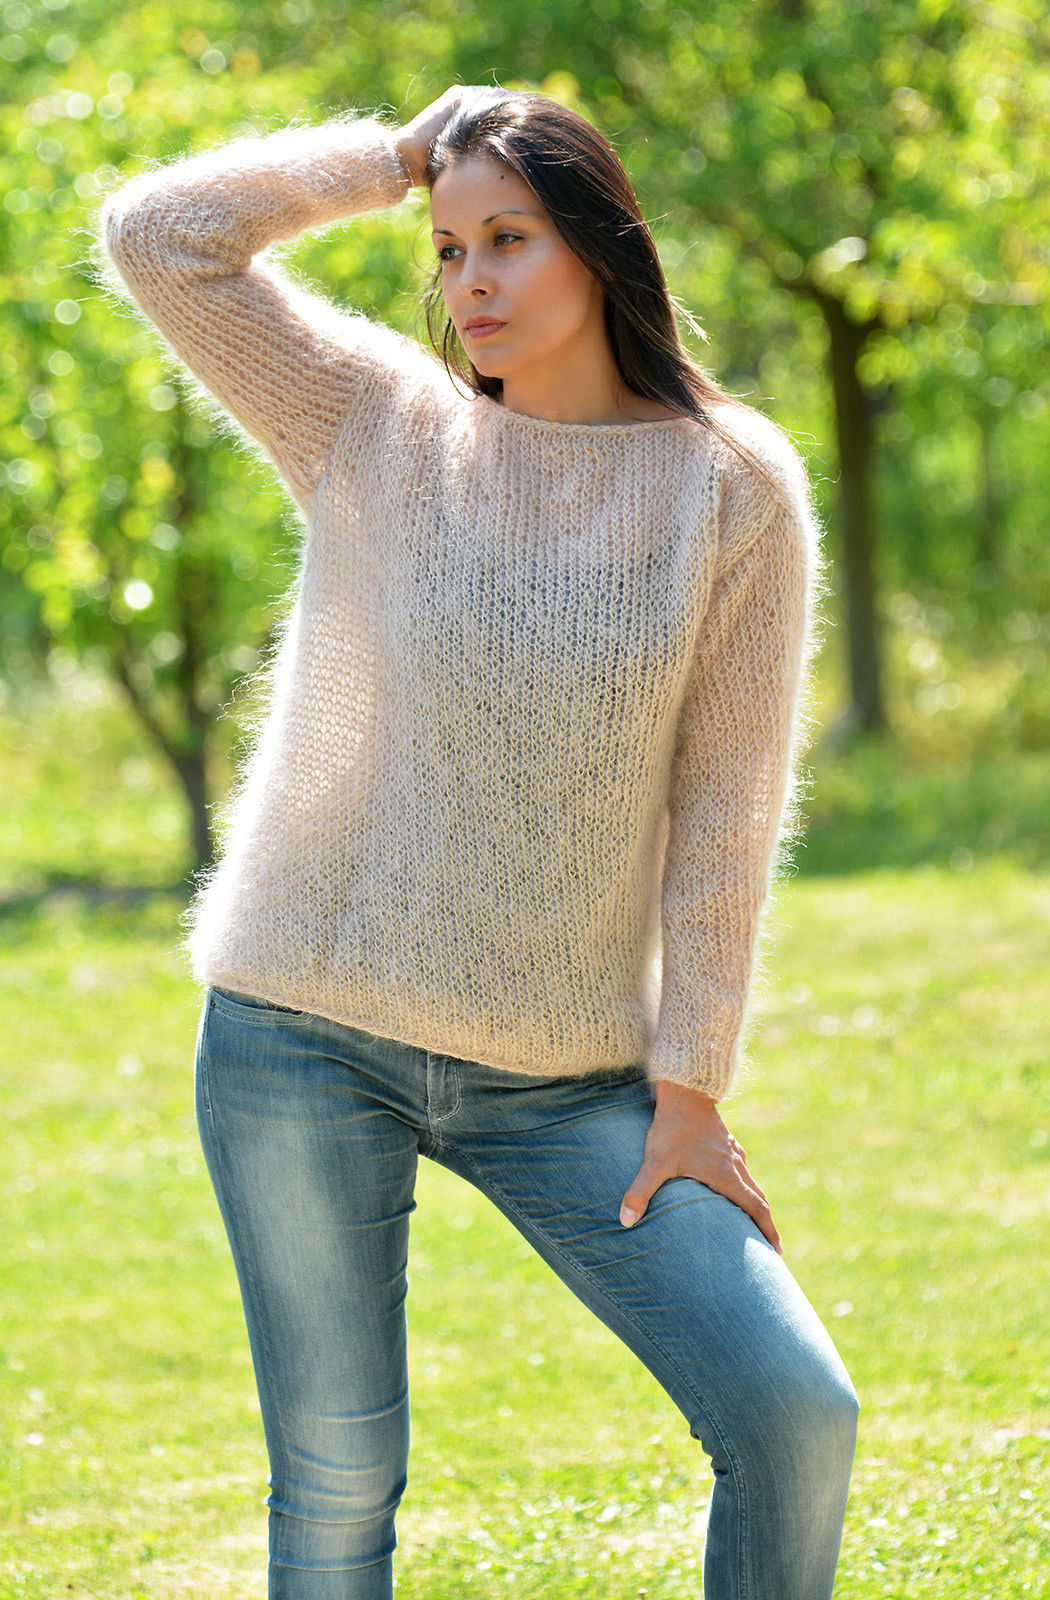 69812294_beige-hand-knitted-mohair-sweater-fuzzy-crew-neck-2.jpg